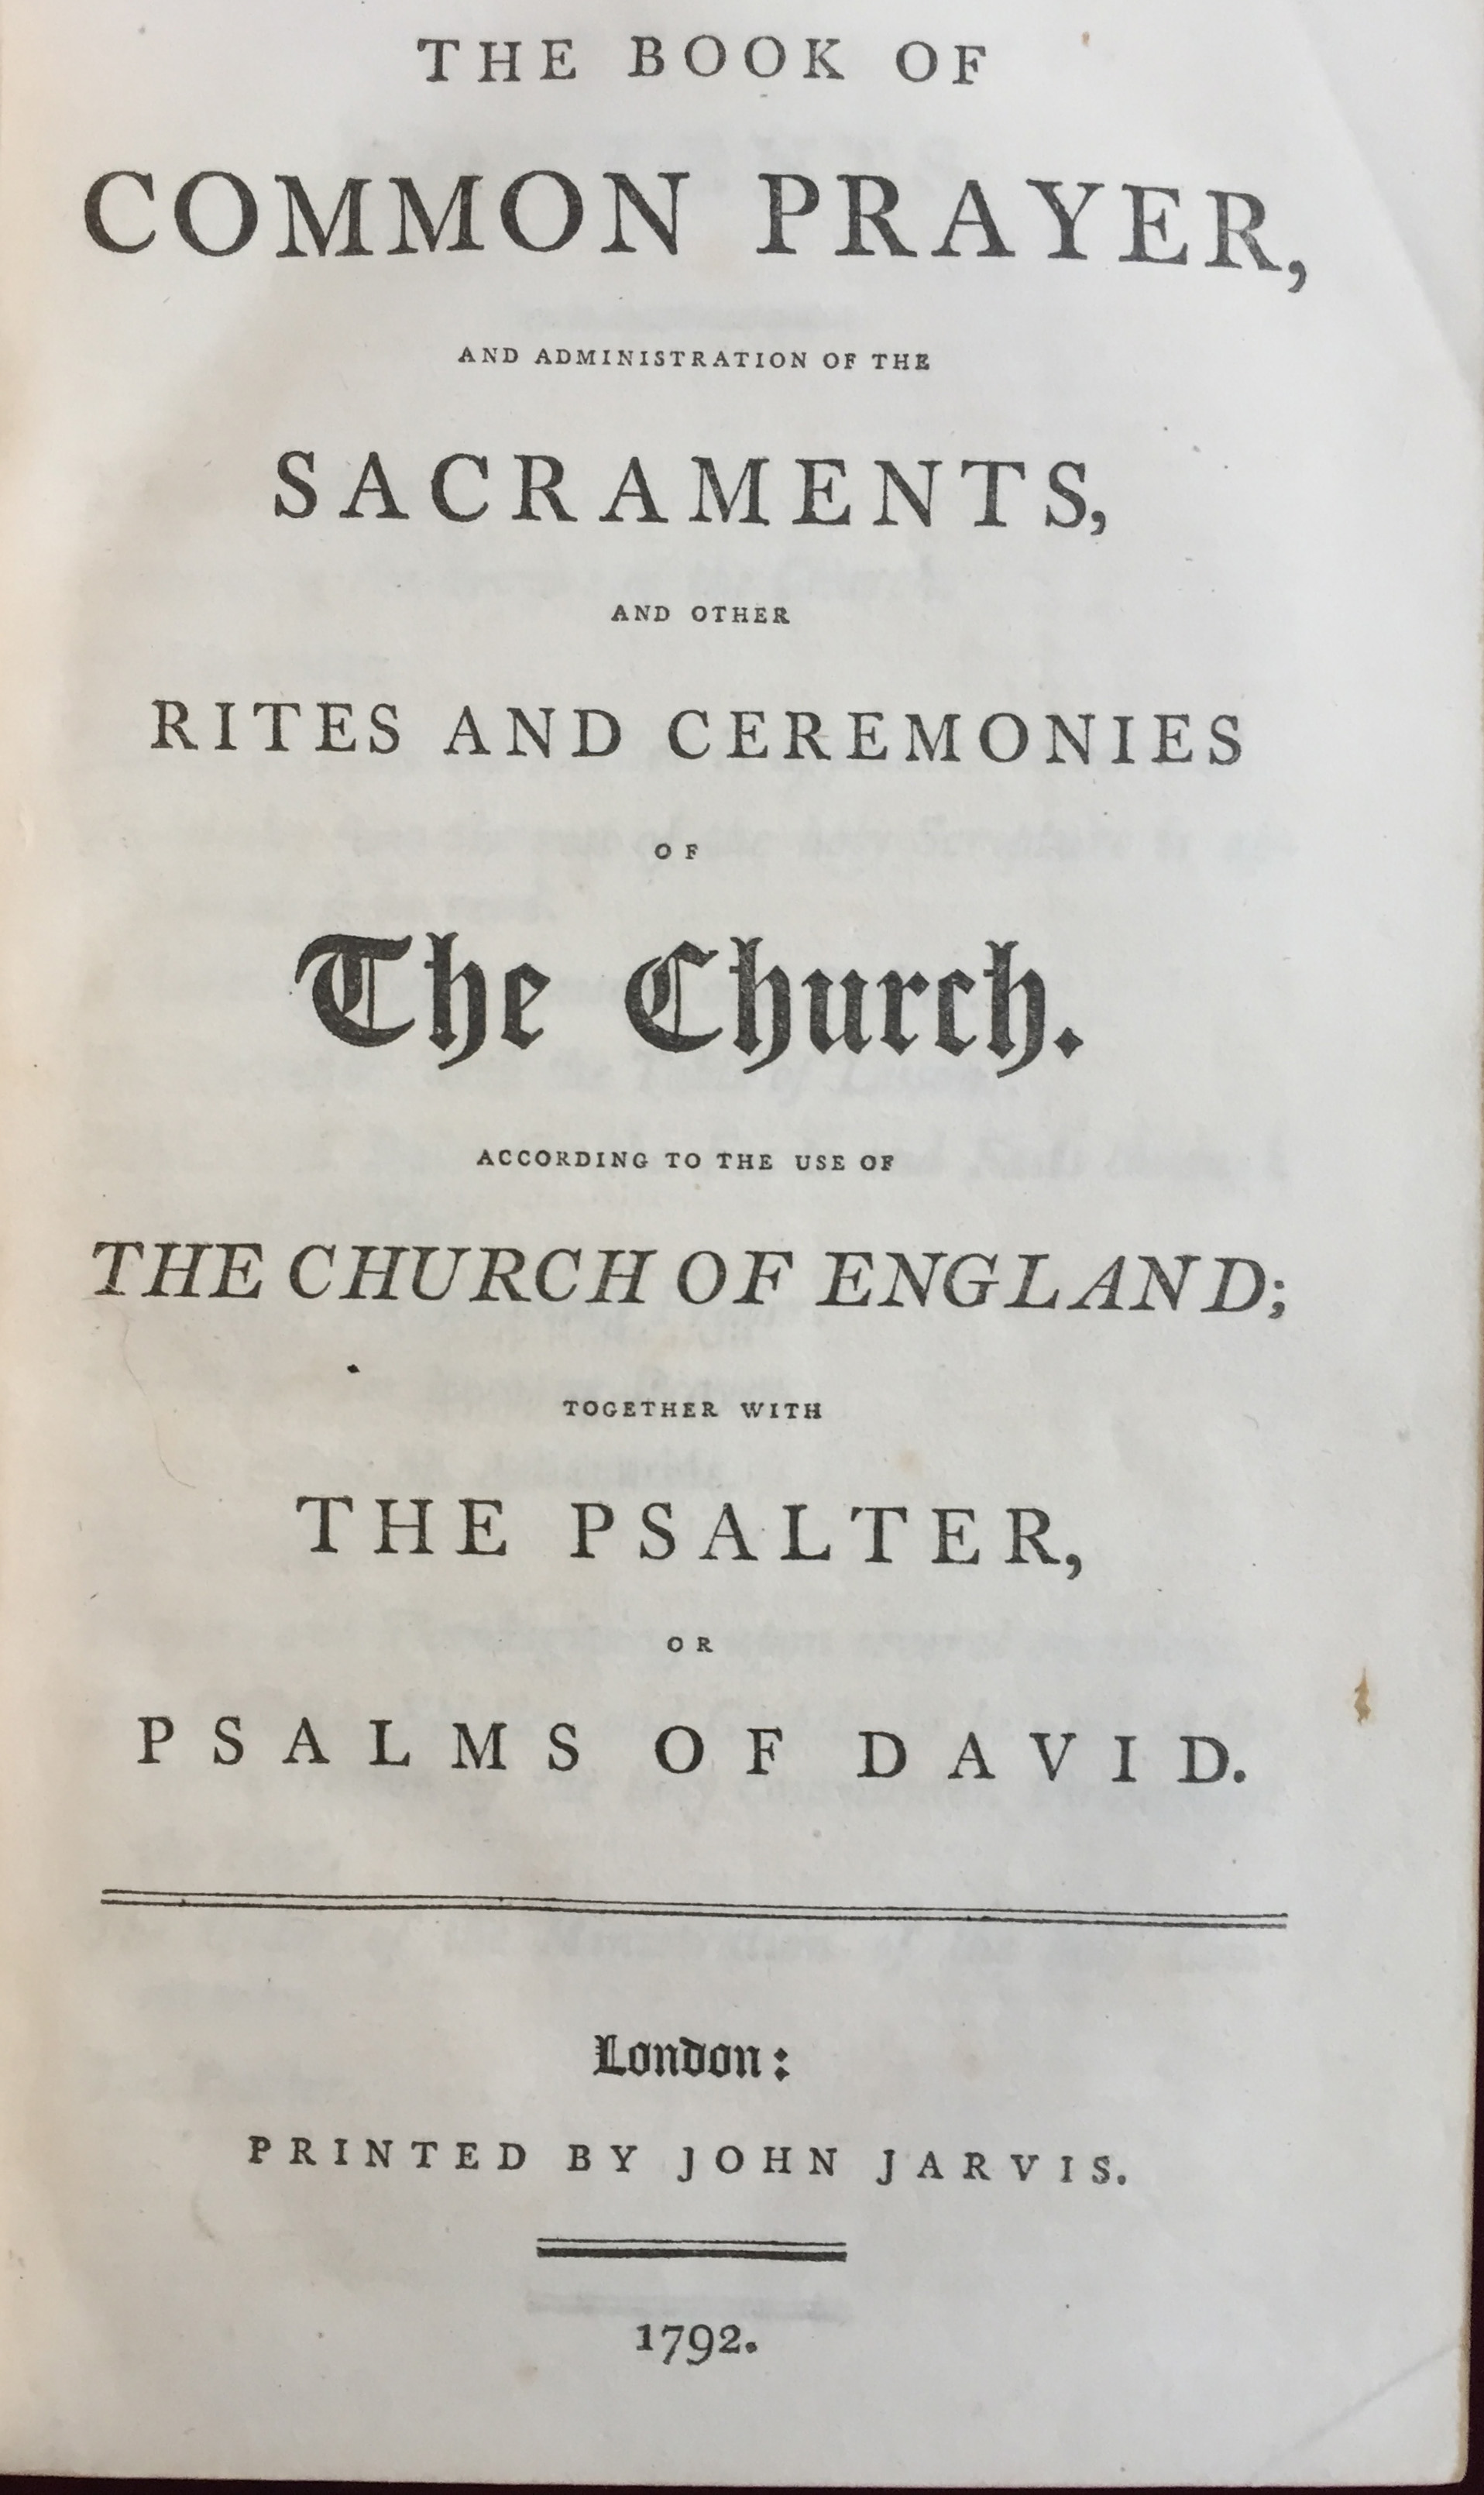 Image for The Book of Common Prayer, and Administration of the Sacraments, Rites and Ceremonies of the Church. According to the use of the Church of England; together with the Psalter, or Psalms of David.